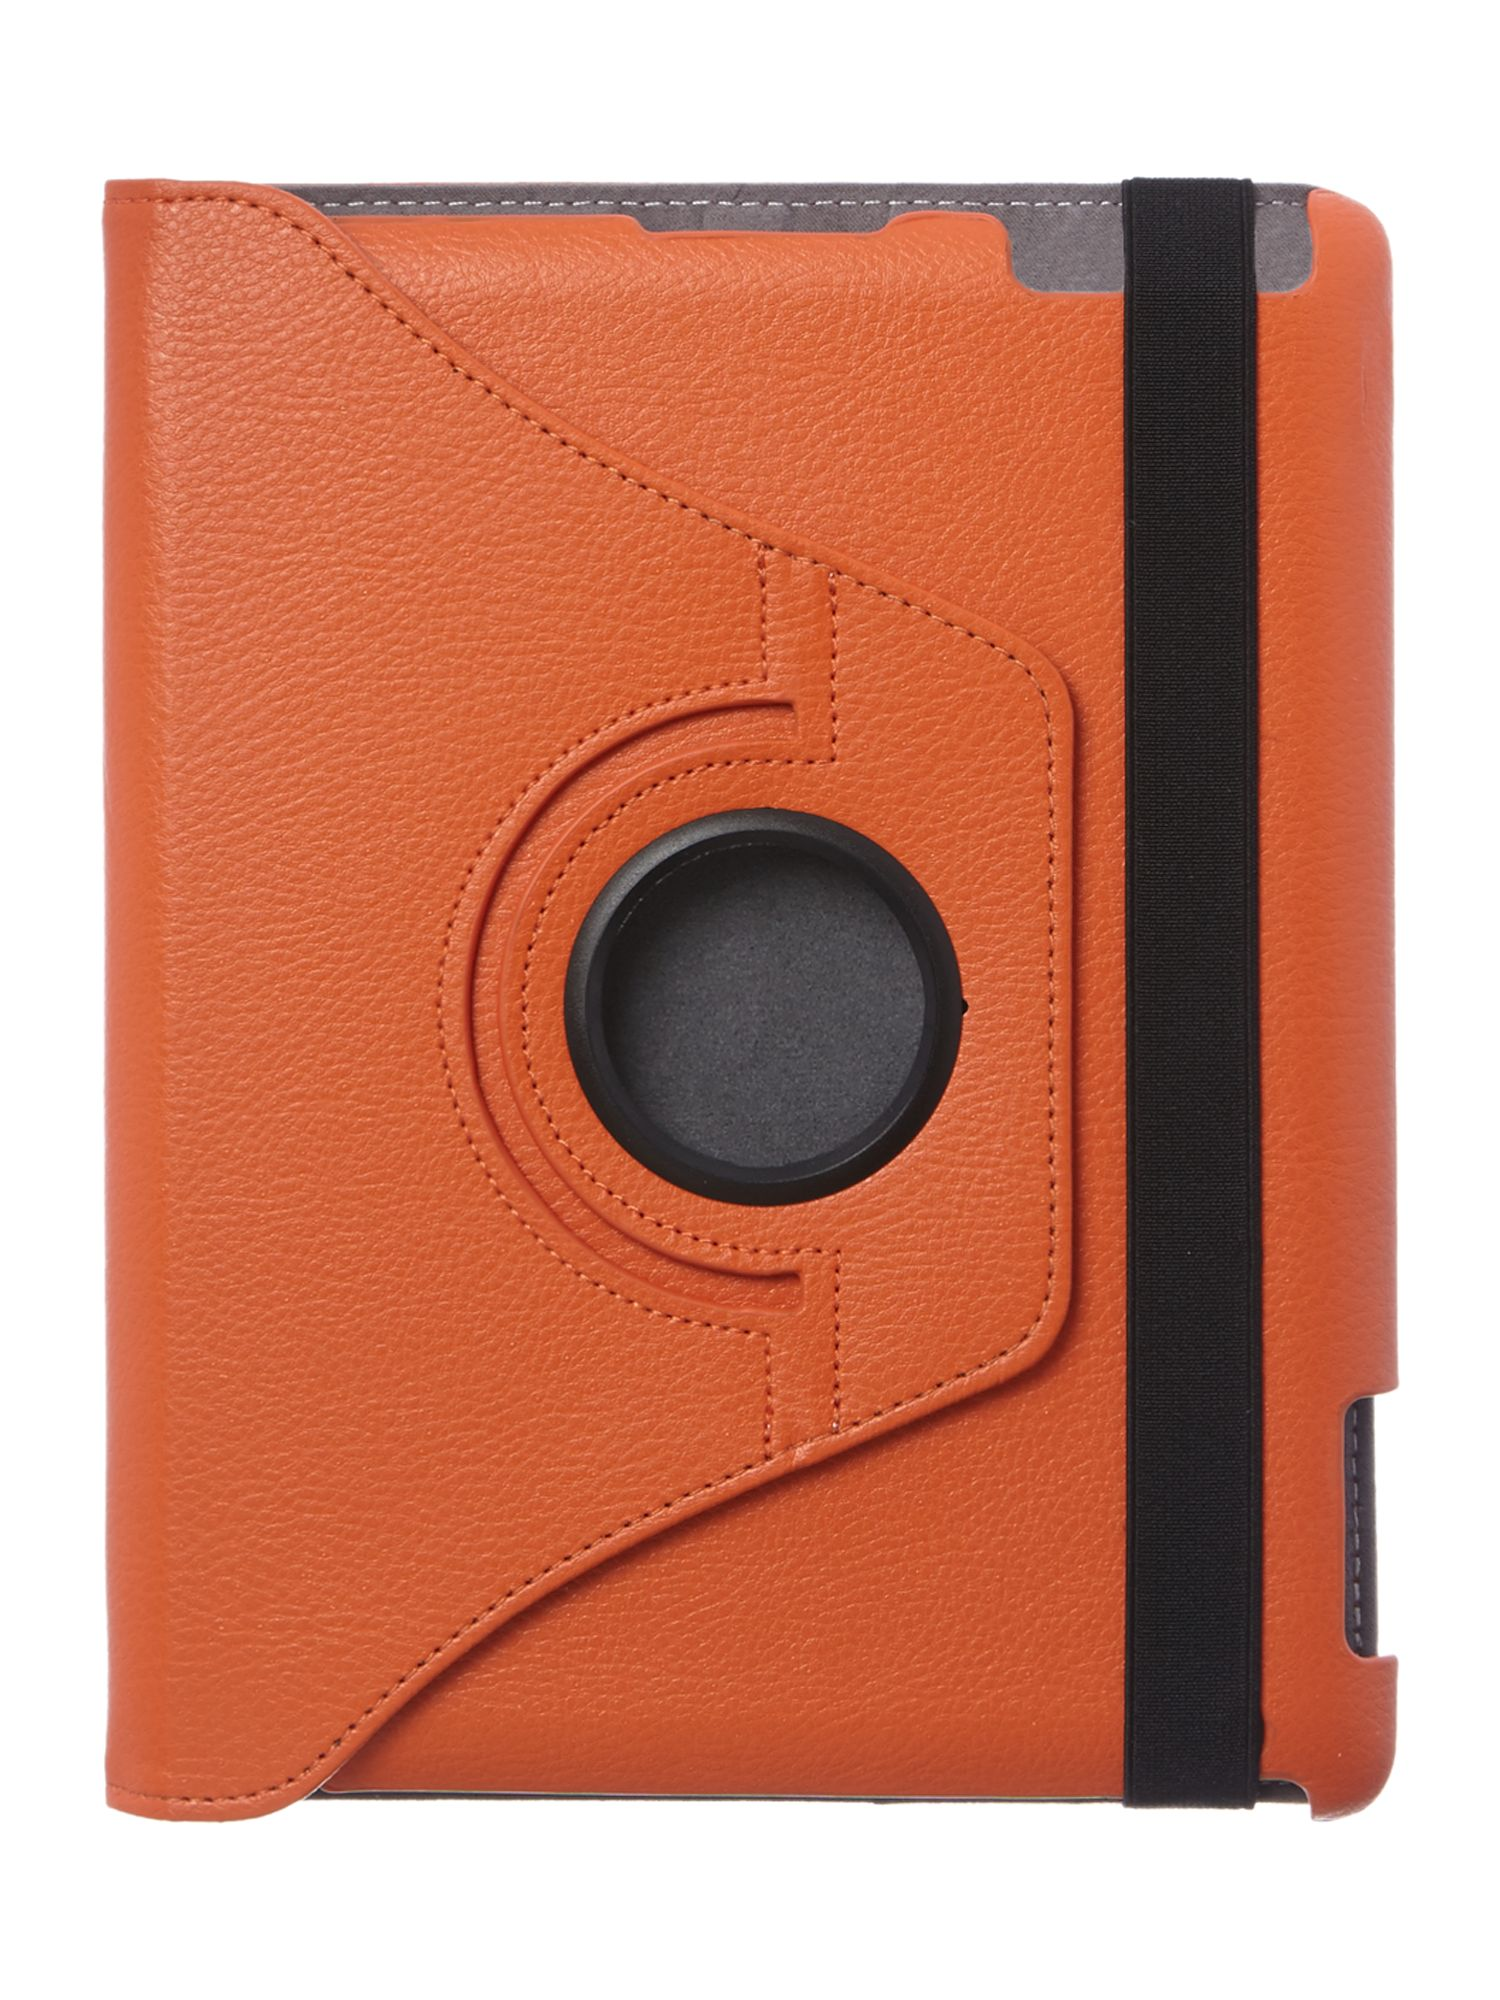 Orange 360 Ipad case